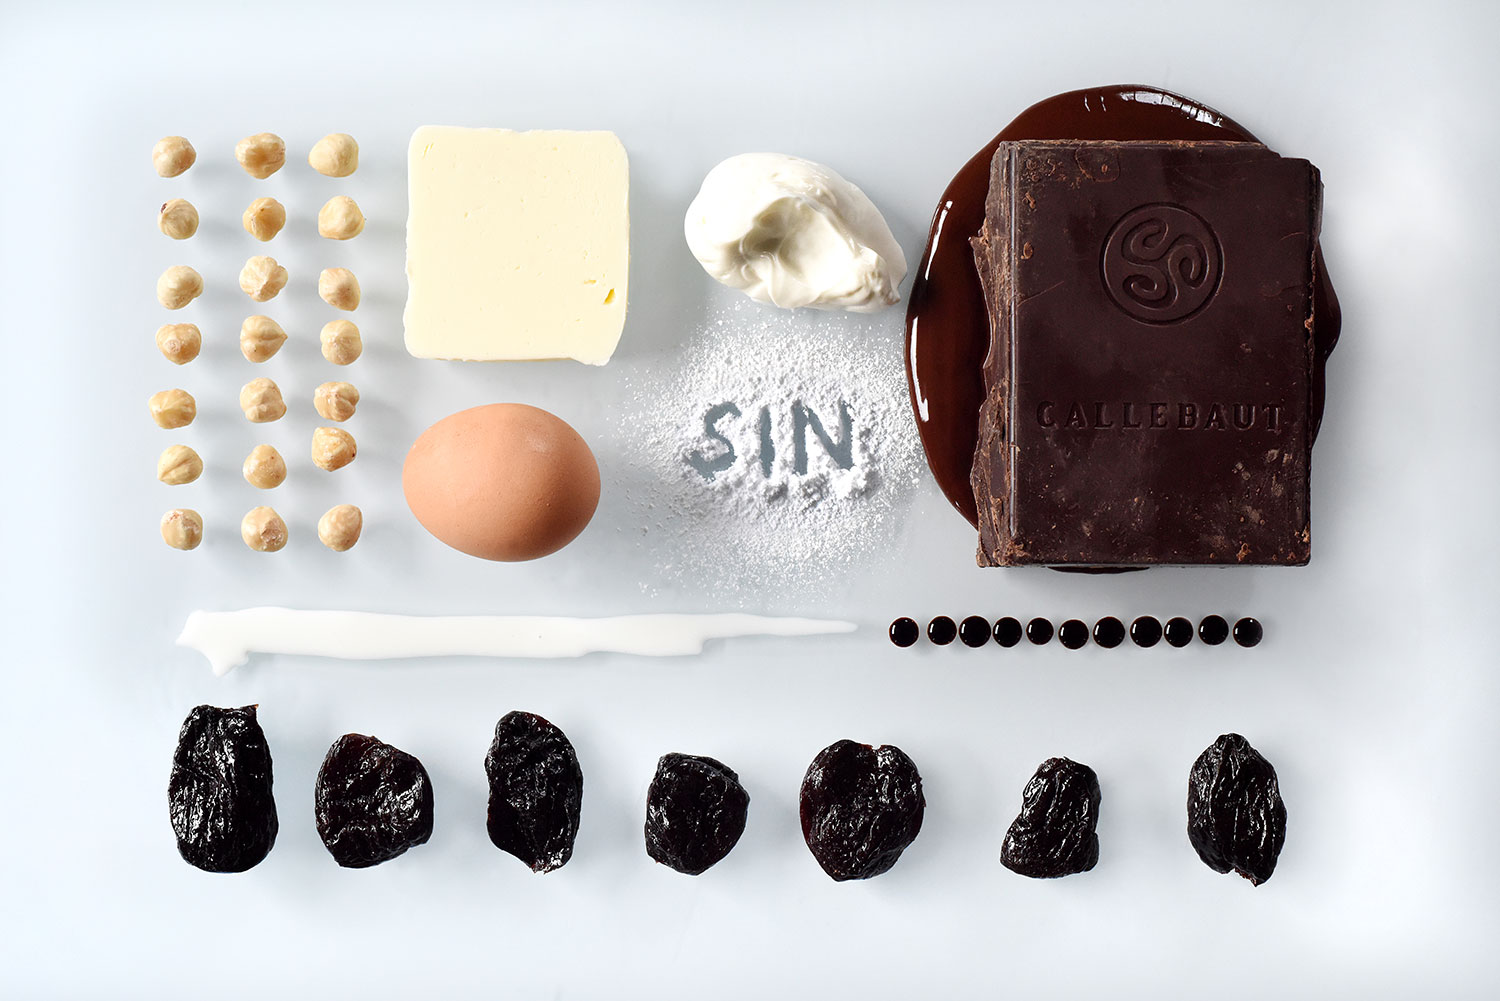 Chocolate Snobbish Cake Ingredients